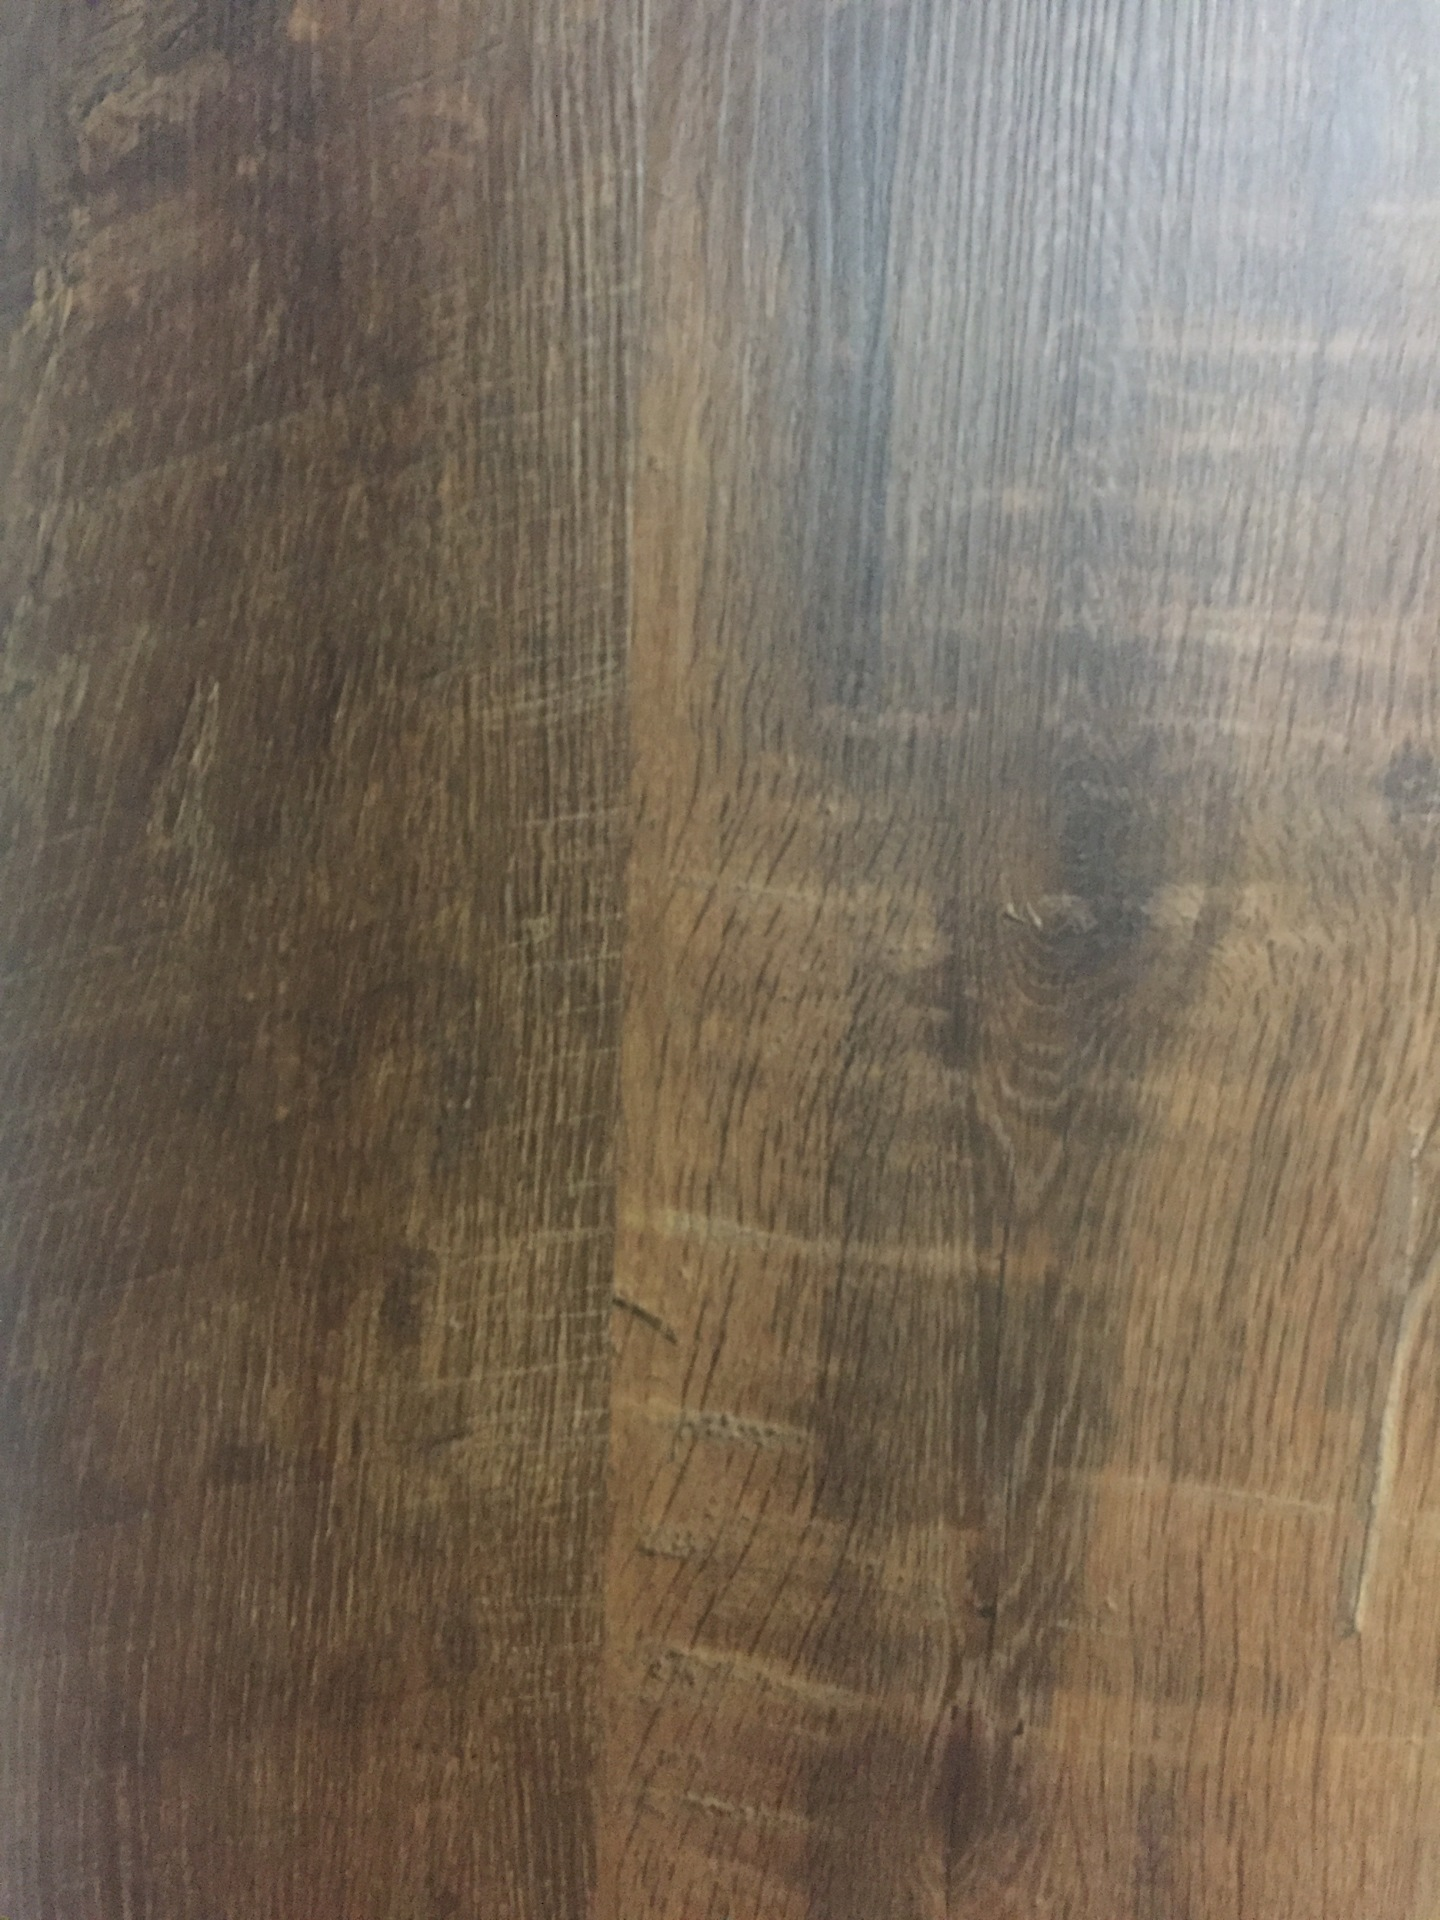 Karndean Korlok Antique French Oak- $4.49 sf